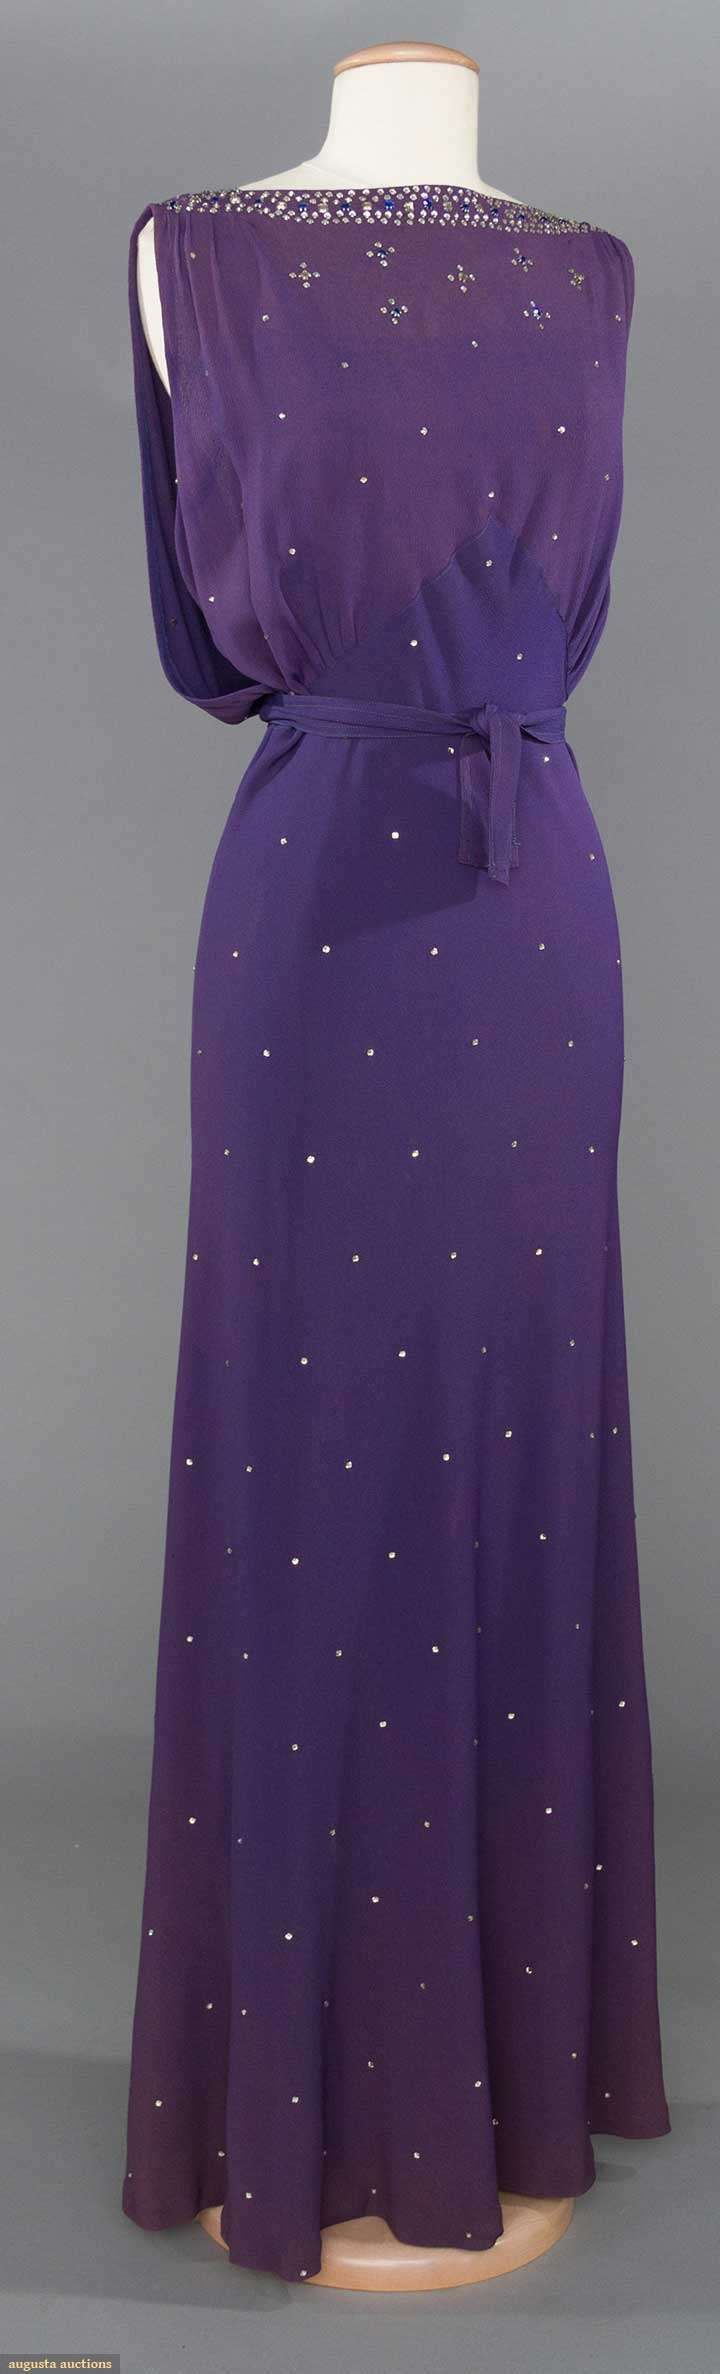 BEADED PURPLE SILK EVENING GOWN, 1930-1940 | May 9, 2017 - CATALOG ...